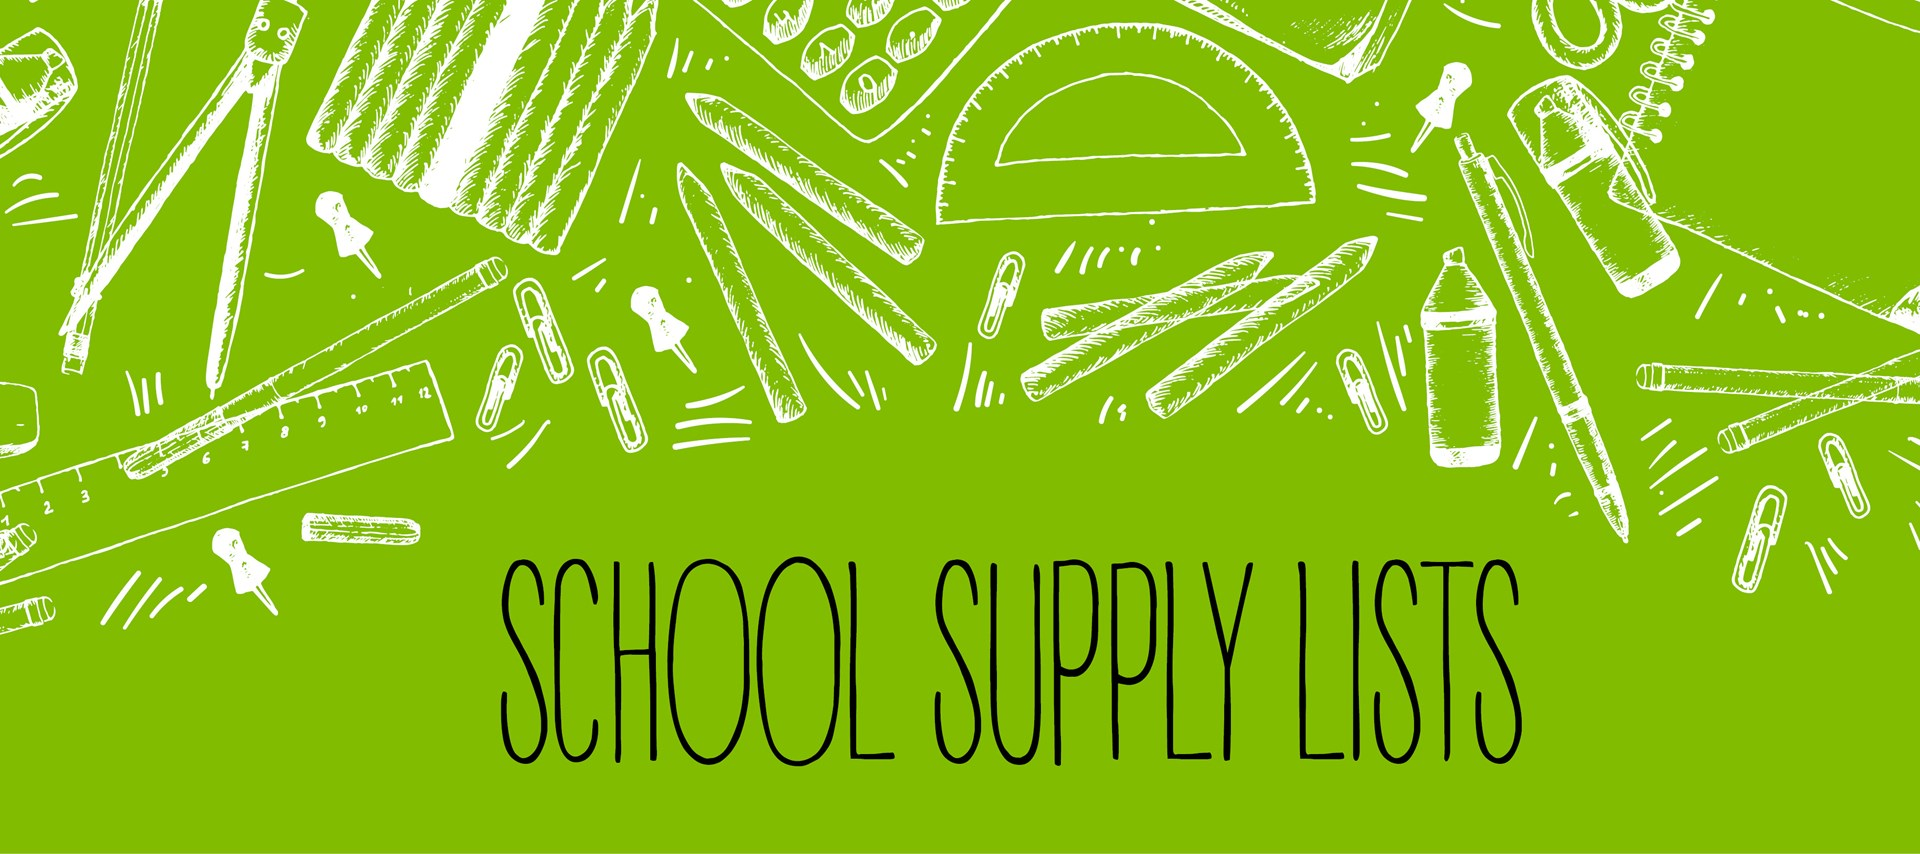 Silverspring School Supply Lists